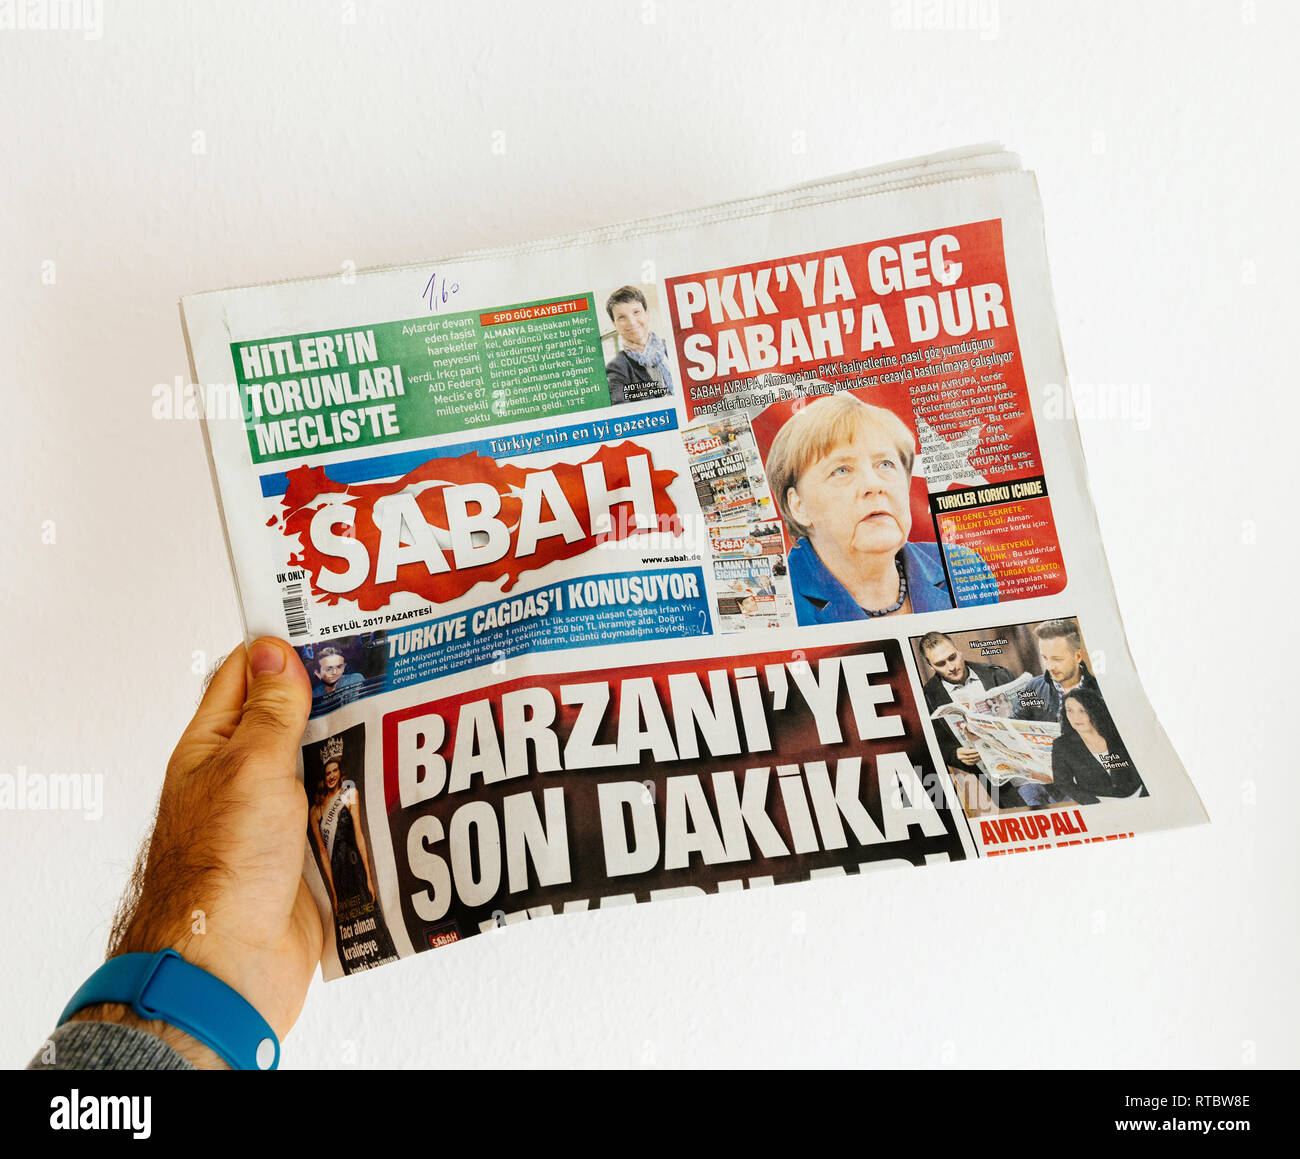 PARIS, FRANCE - SEP 25, 2017: Sabah  Turkish daily newspaper with portrait of Angela Merkel after election in Germany for the Chancellor of Germany, the head of the federal government - Stock Image